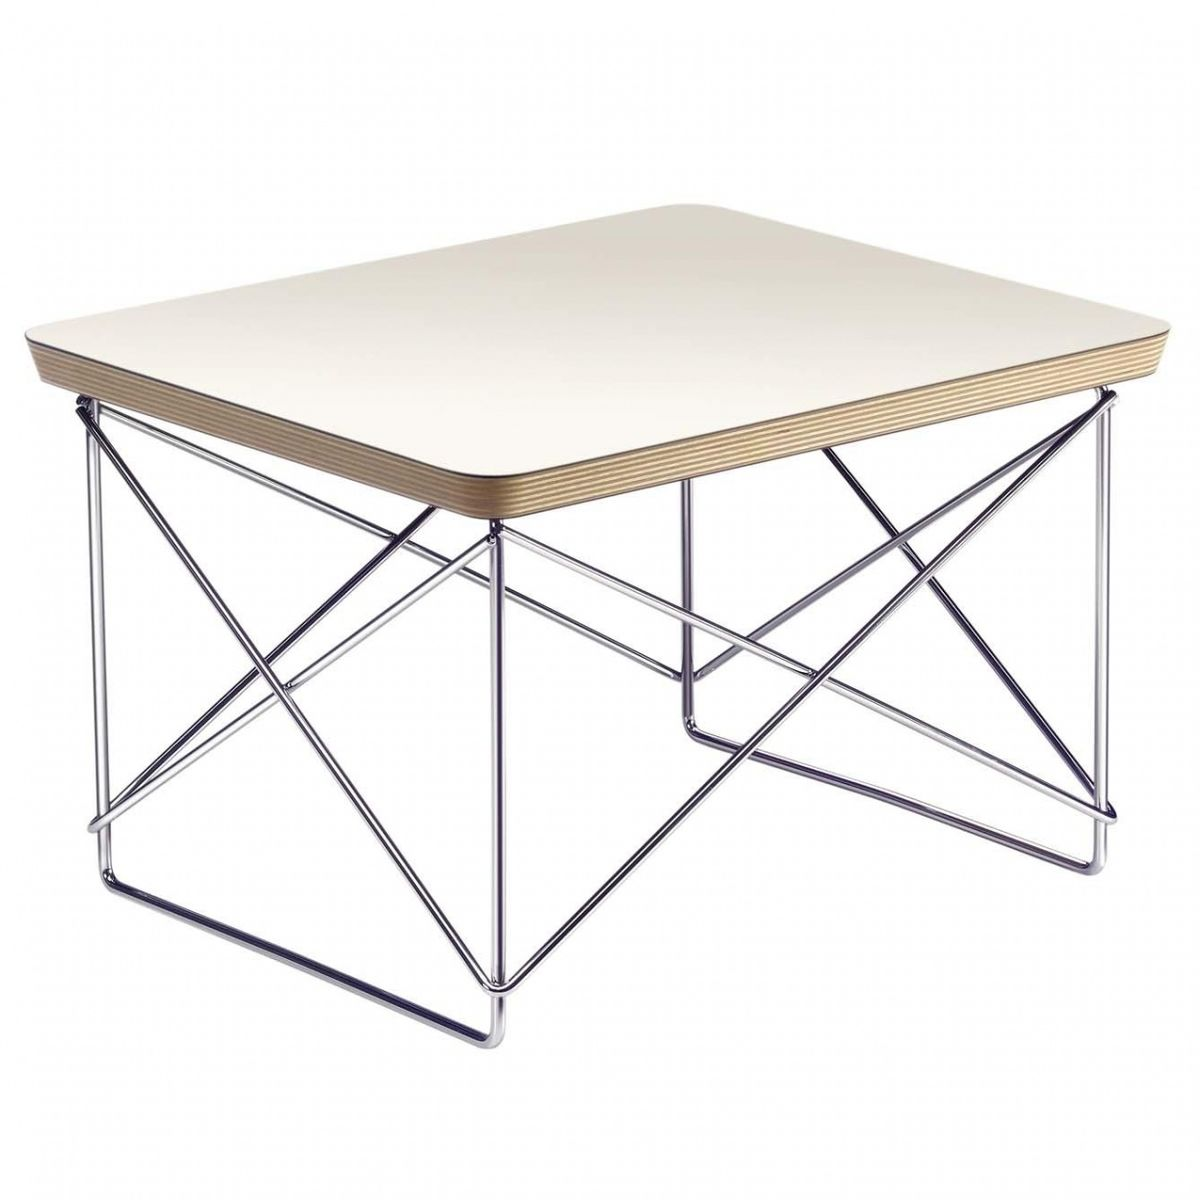 Vitra   Occasional Table LTR Side Table   White/oak Edge/frame Chrome